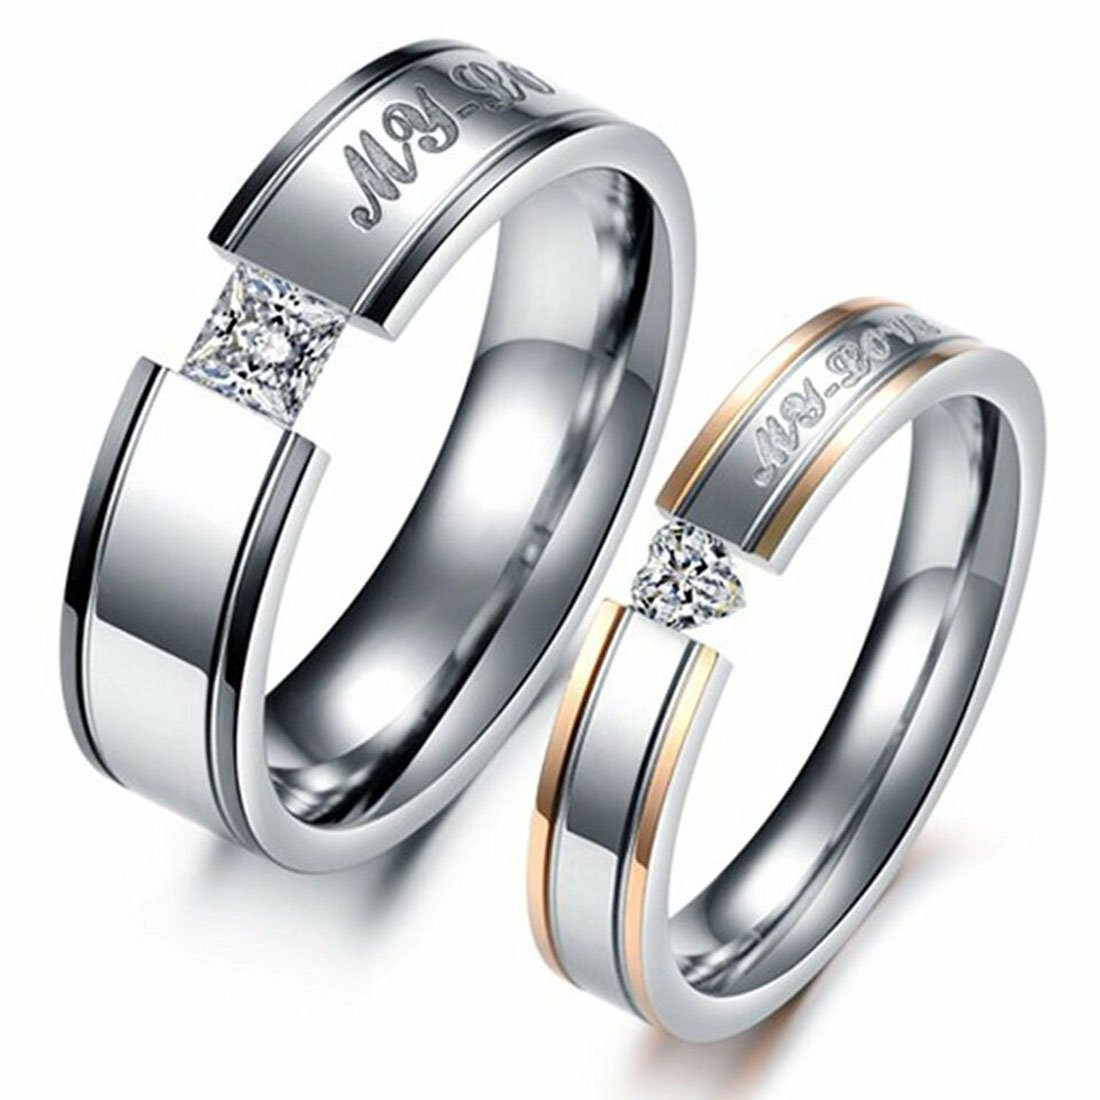 LAVUMO Him Her Couple Rings Stainless Steel Anniversary Engagement Promise Wedding Band My Love CZ (men 9 & women 8)